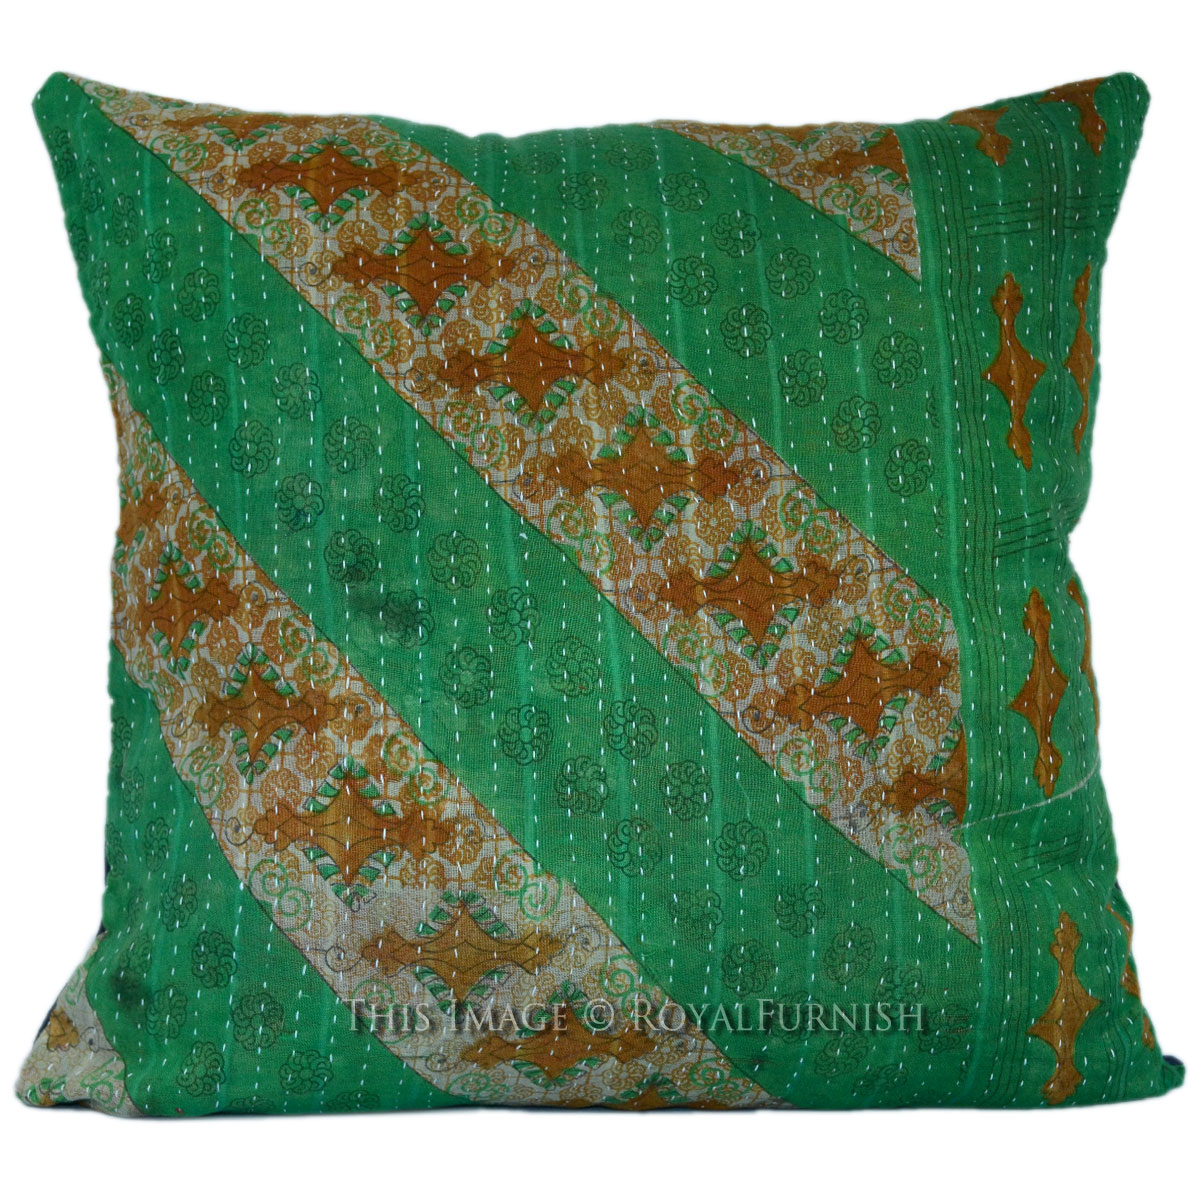 Vintage Decorative Throw Pillows : 16